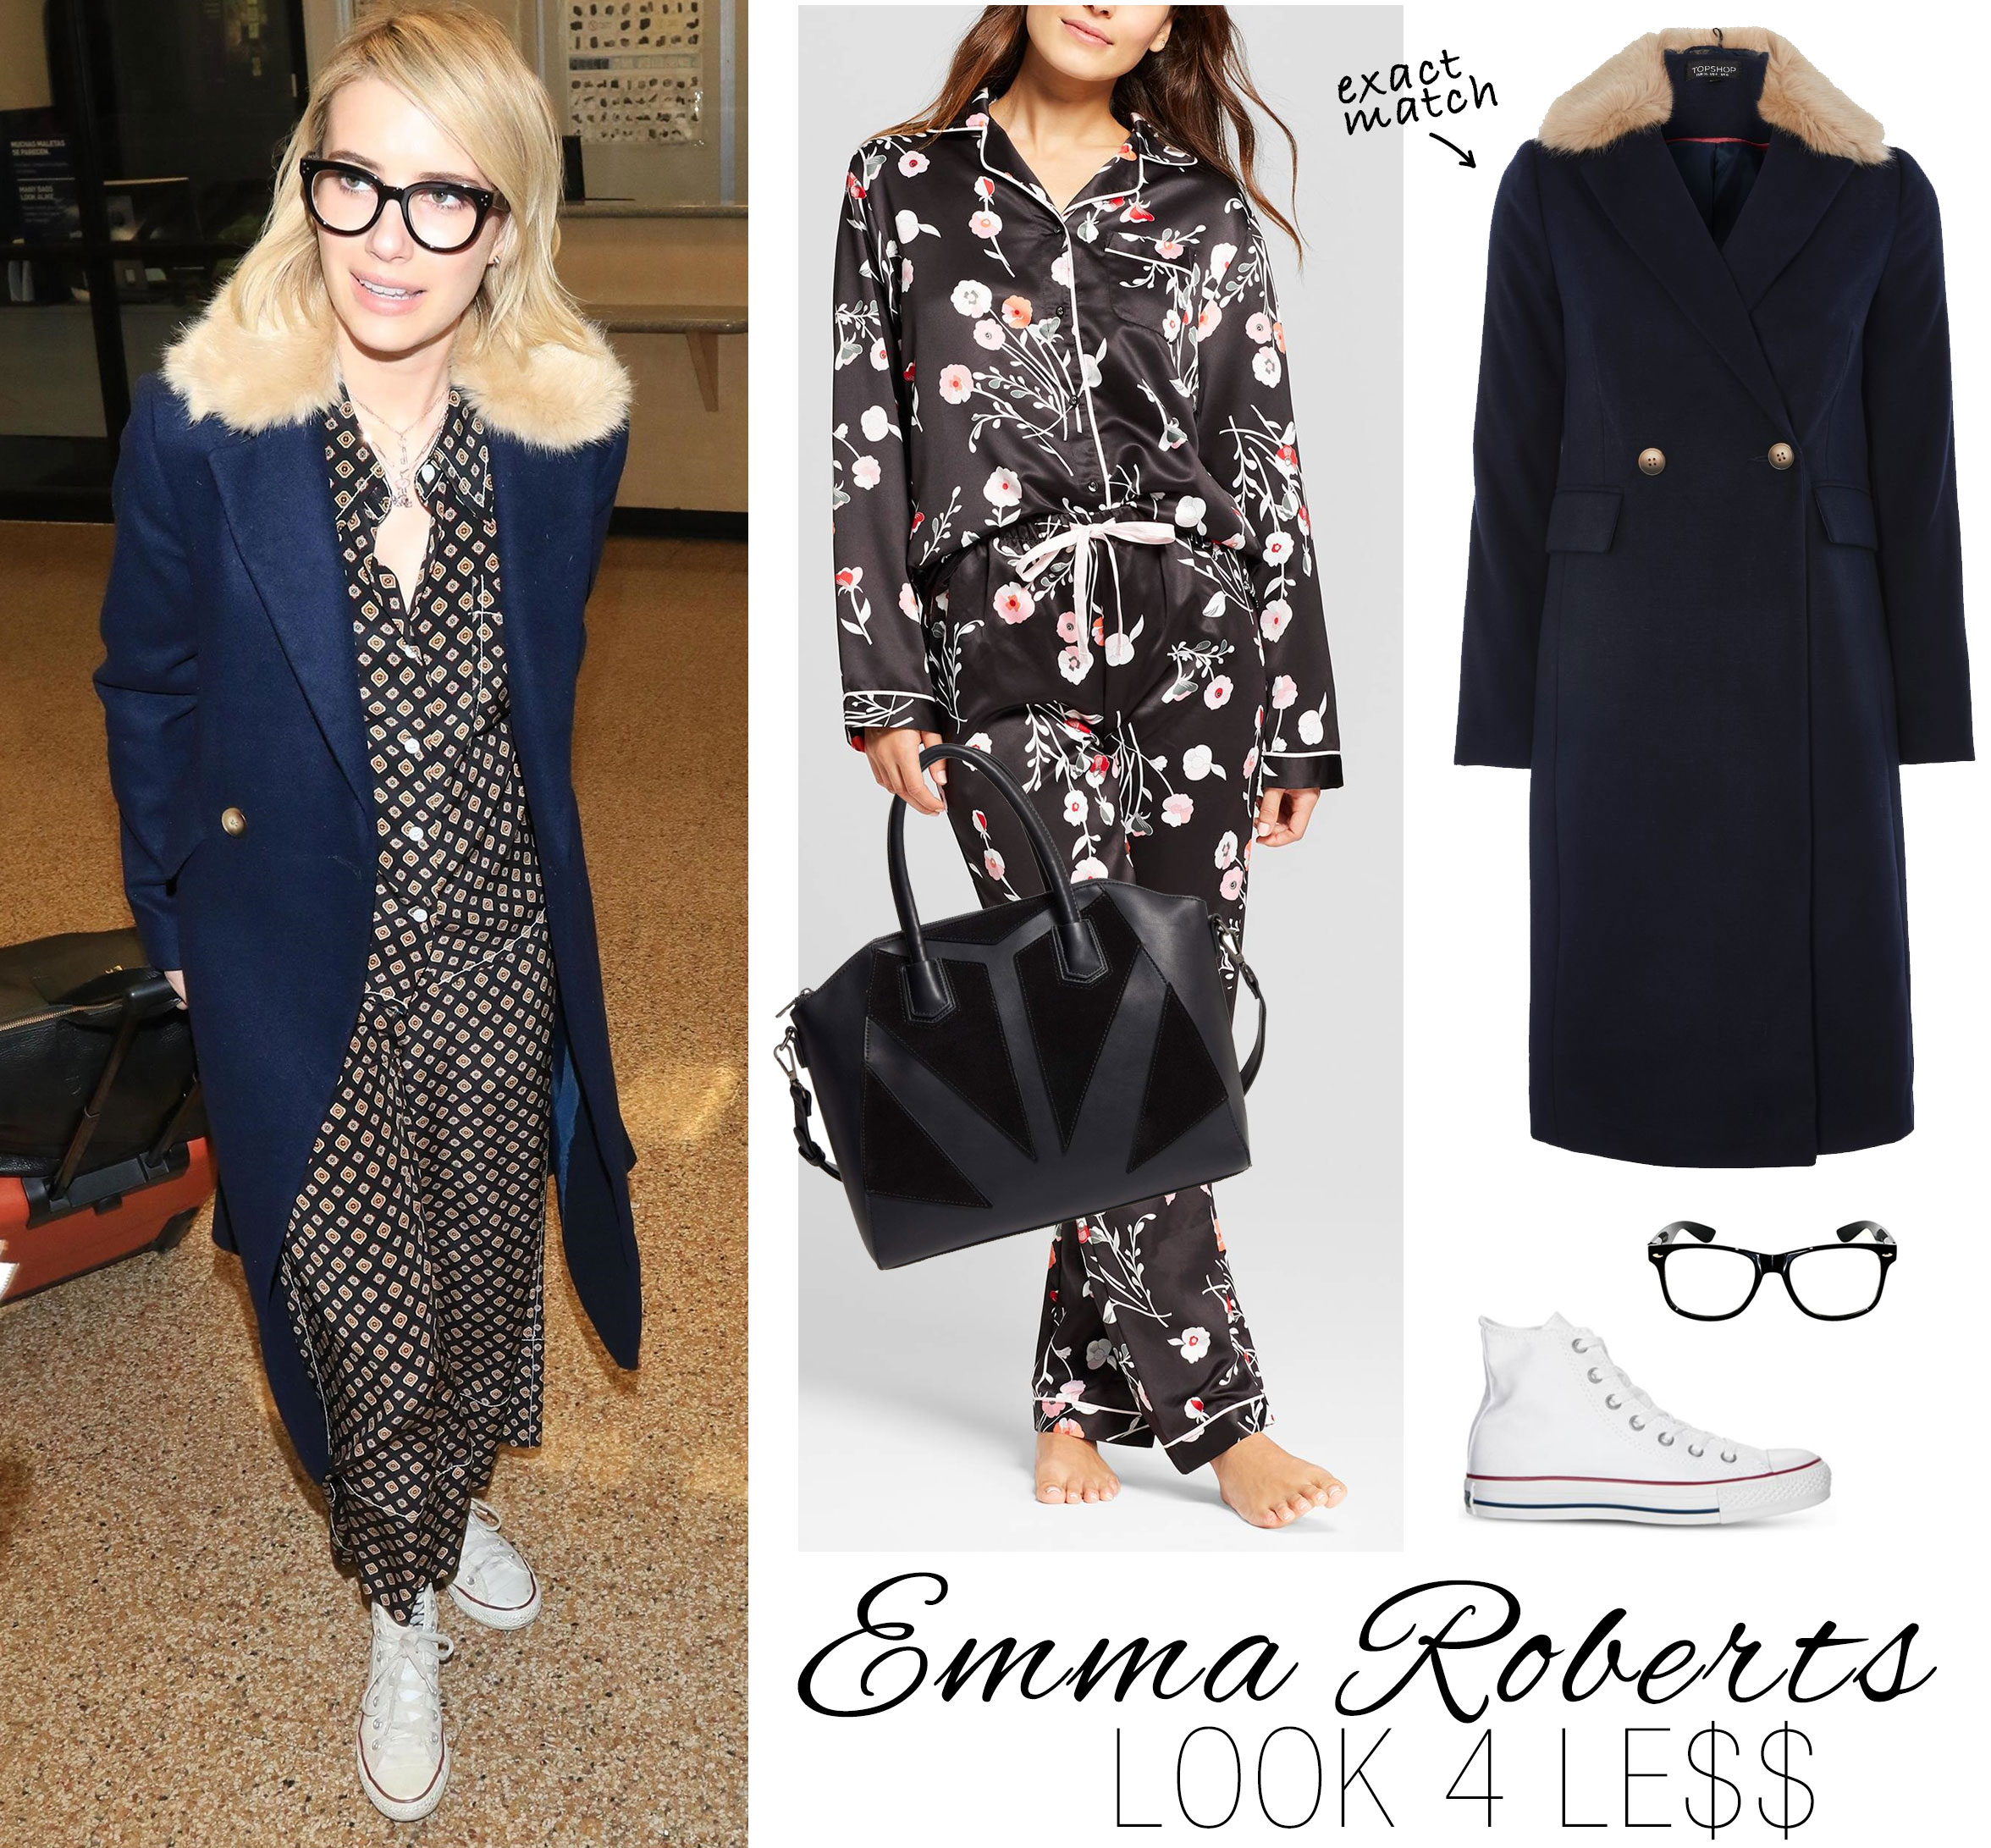 457d66f1ec0b Emma Roberts wears Topshop pajamas and coat with Converse sneakers and  Celine geek glasses.